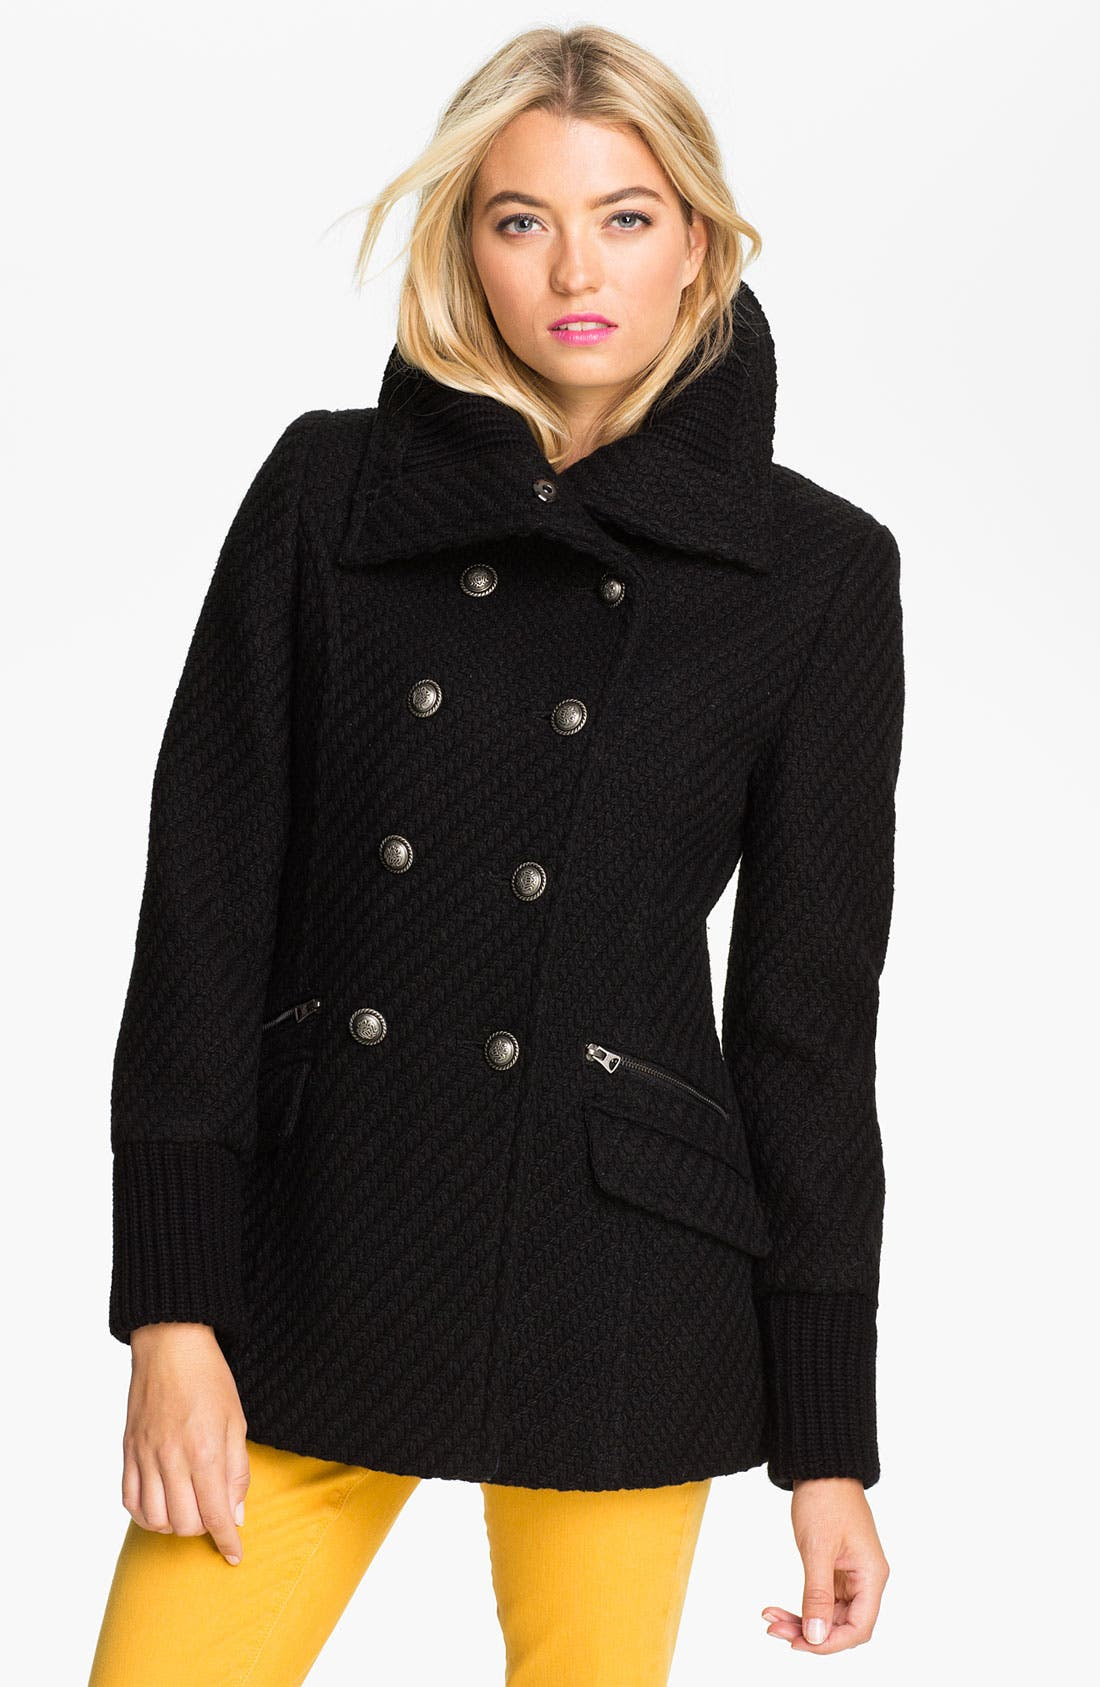 Alternate Image 1 Selected - Buffalo by David Bitton Double Breasted Textured Peacoat